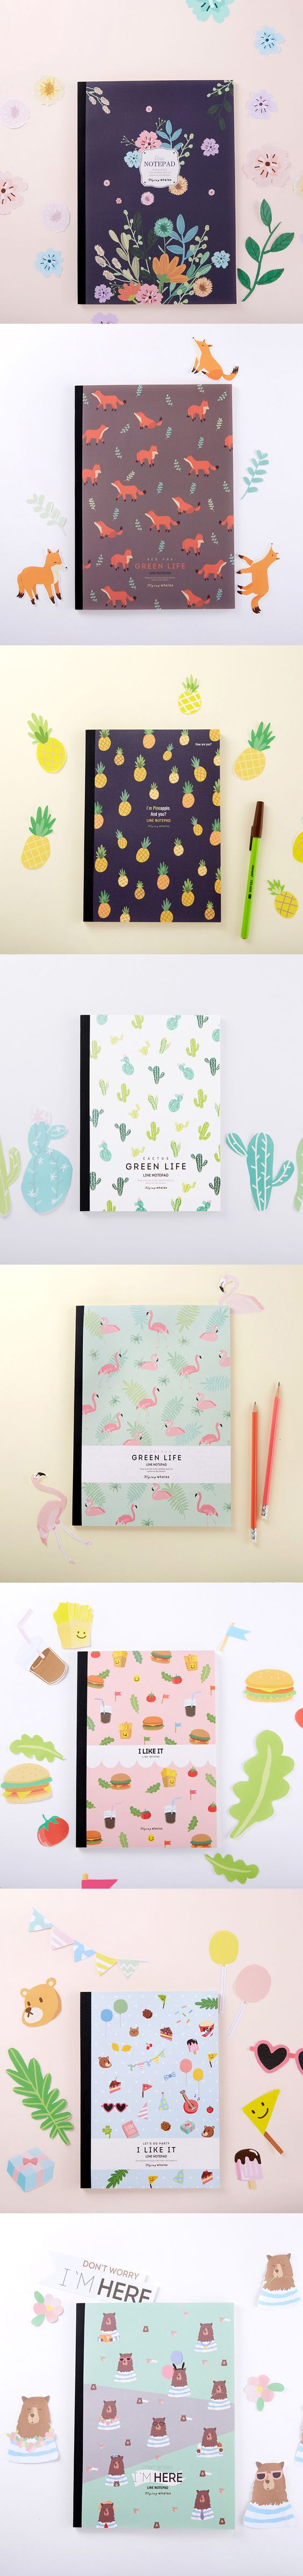 Flying Whales Pattern Notepad: